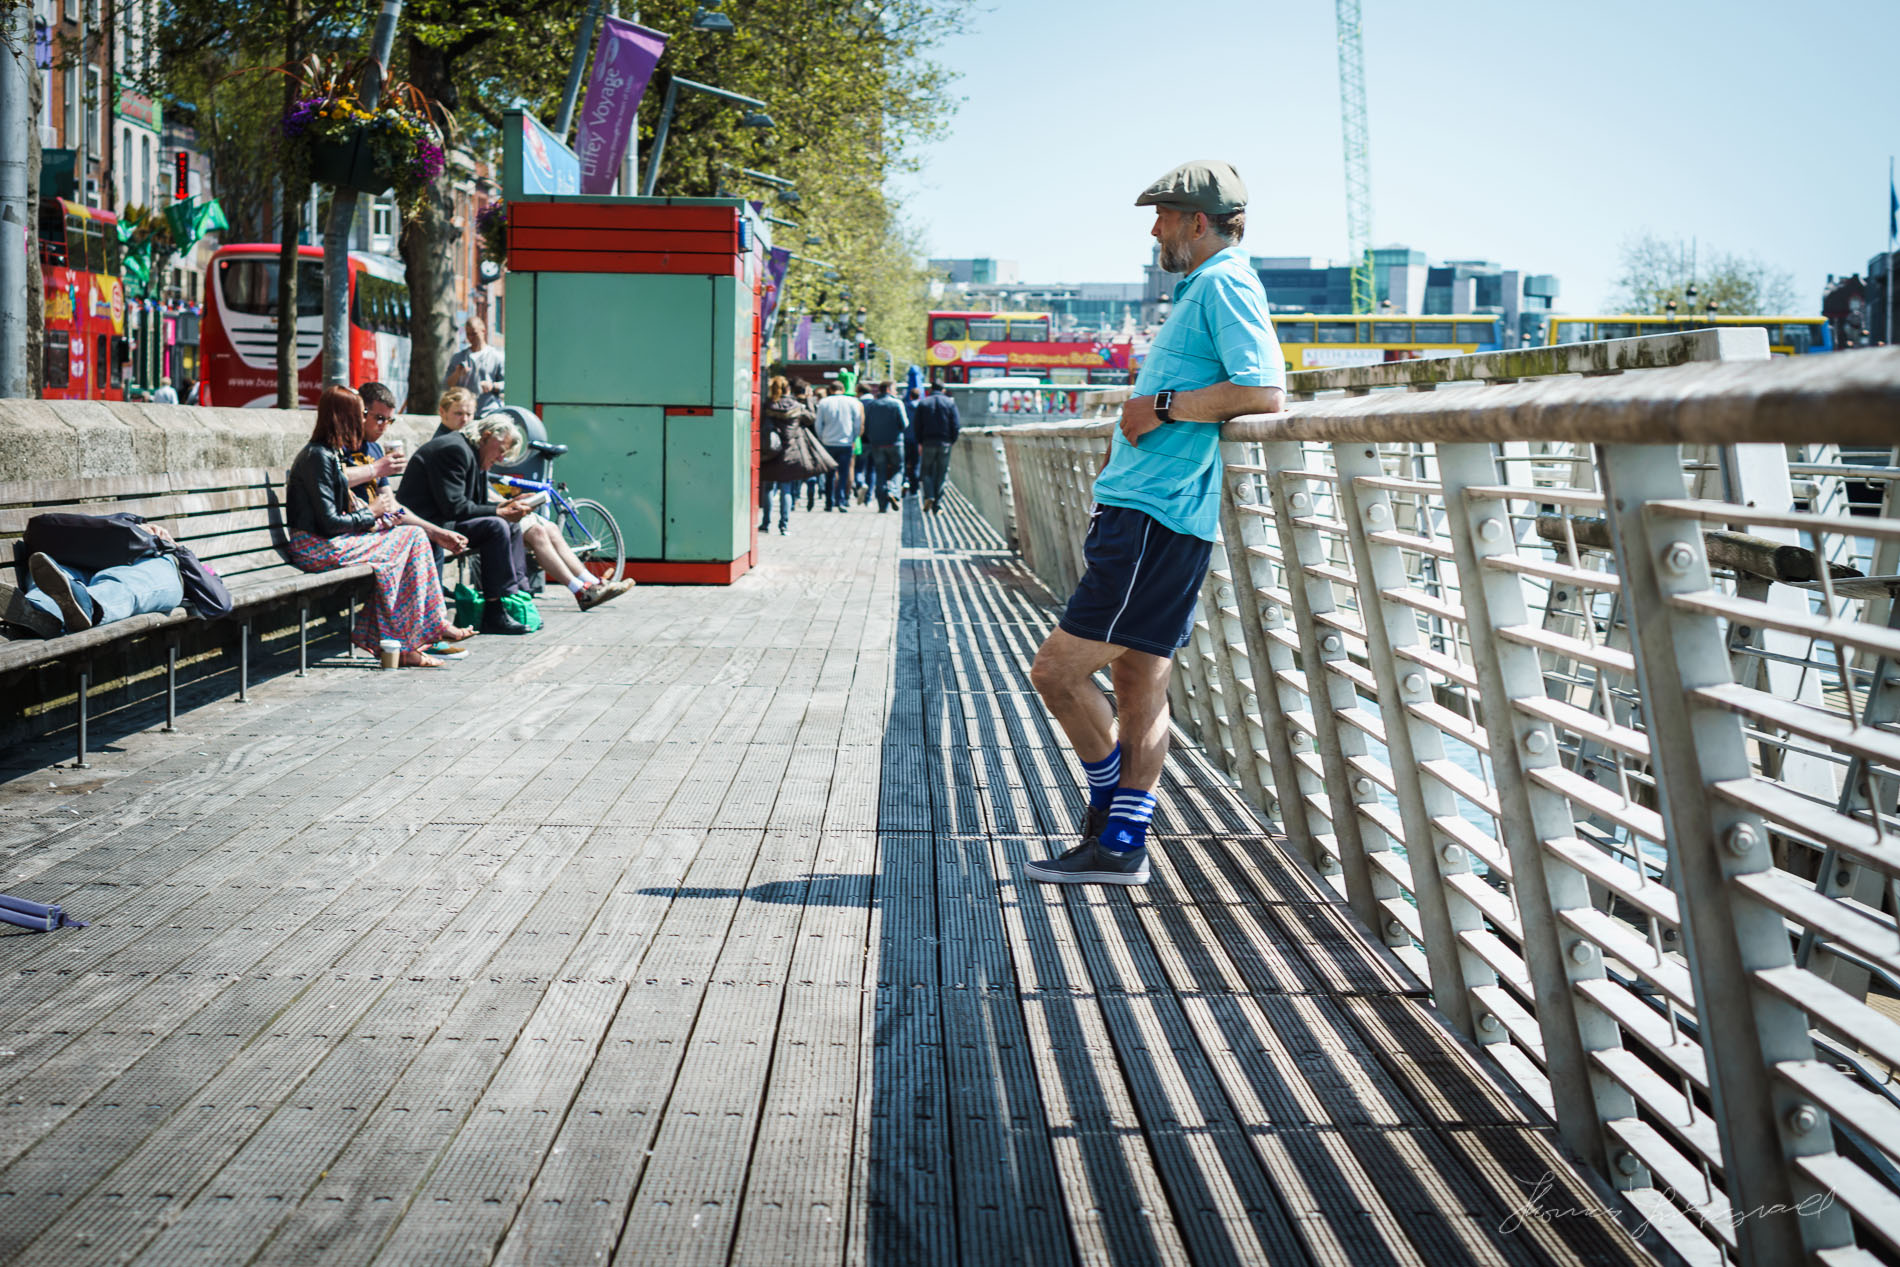 Boardwalk Man